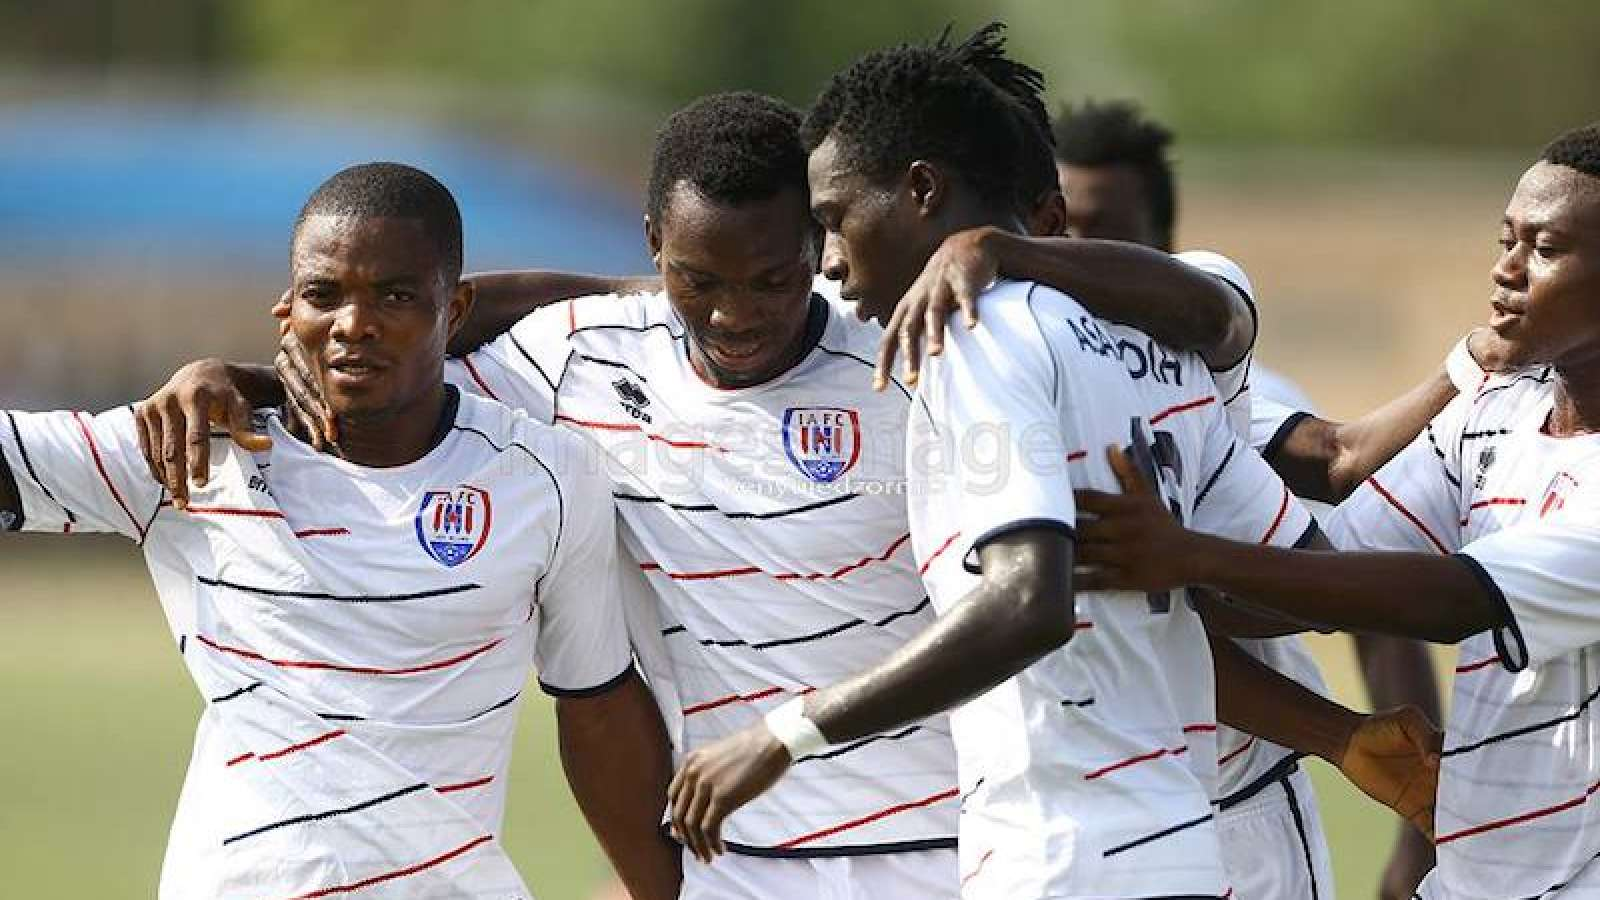 Ghana Premier League- Preview: Inter Allies vs Wa All Stars- Tough task for struggling hosts